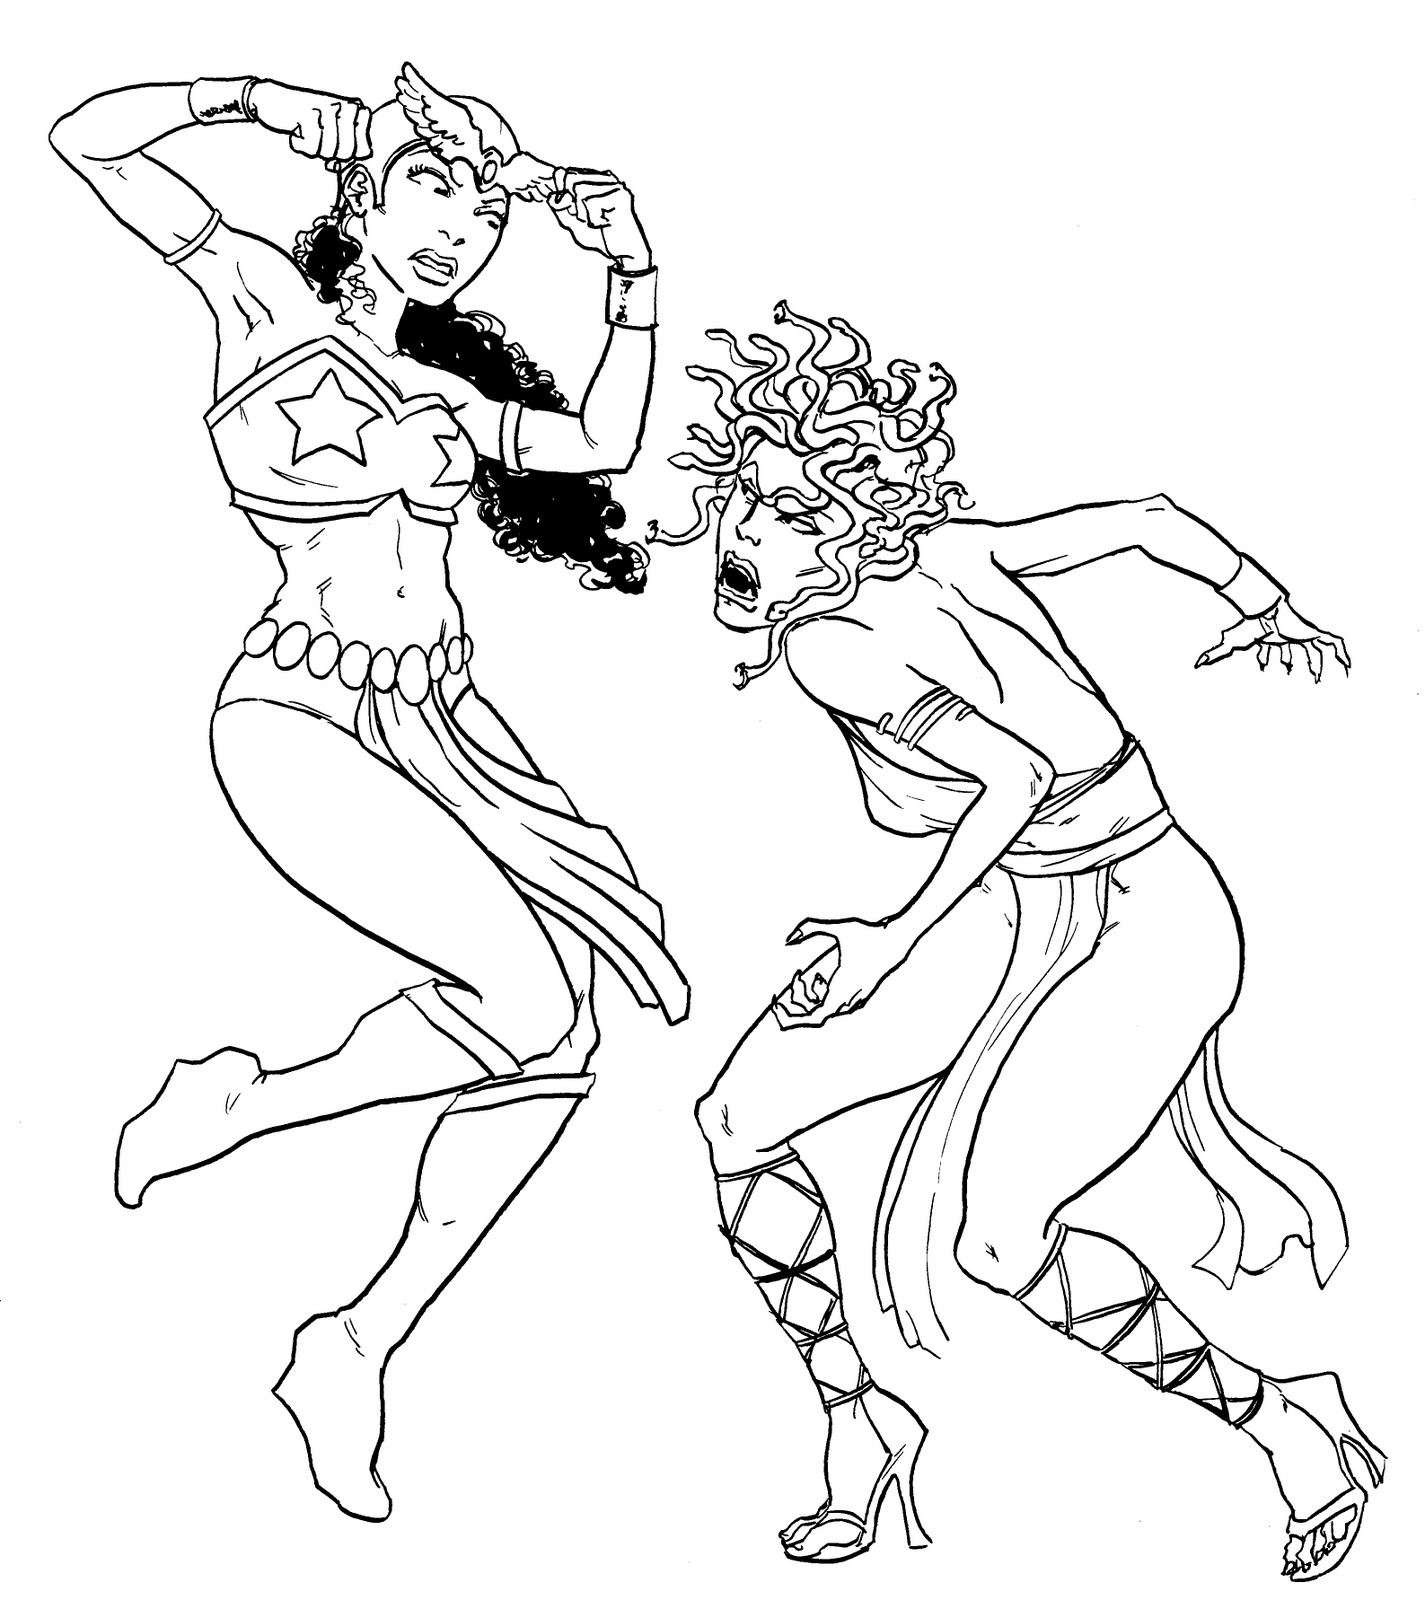 drawbridge darna and her arch enemy valentina